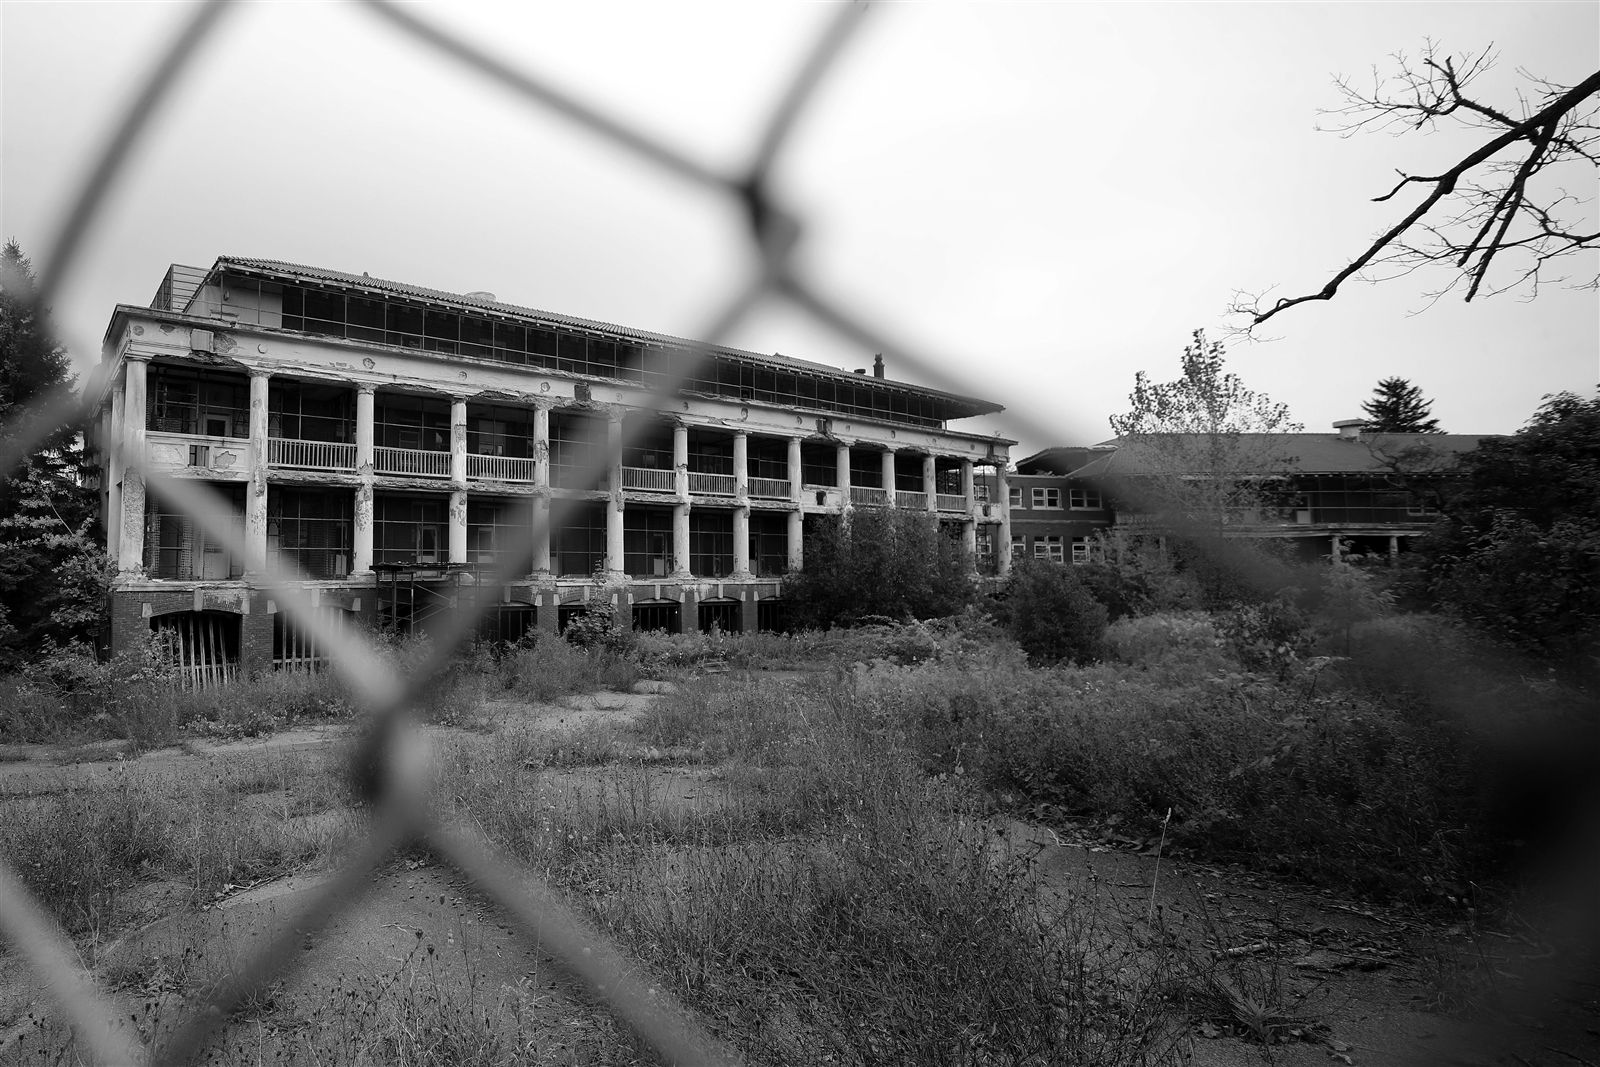 An abandoned former tuberculosis hospital in Perrysburg has been said to be haunted for decades. Opened in 1912, the J.N. Adam Memorial Hospital closed in 1960 and was used as a facility for the developmentally disabled until it closed in 1995.